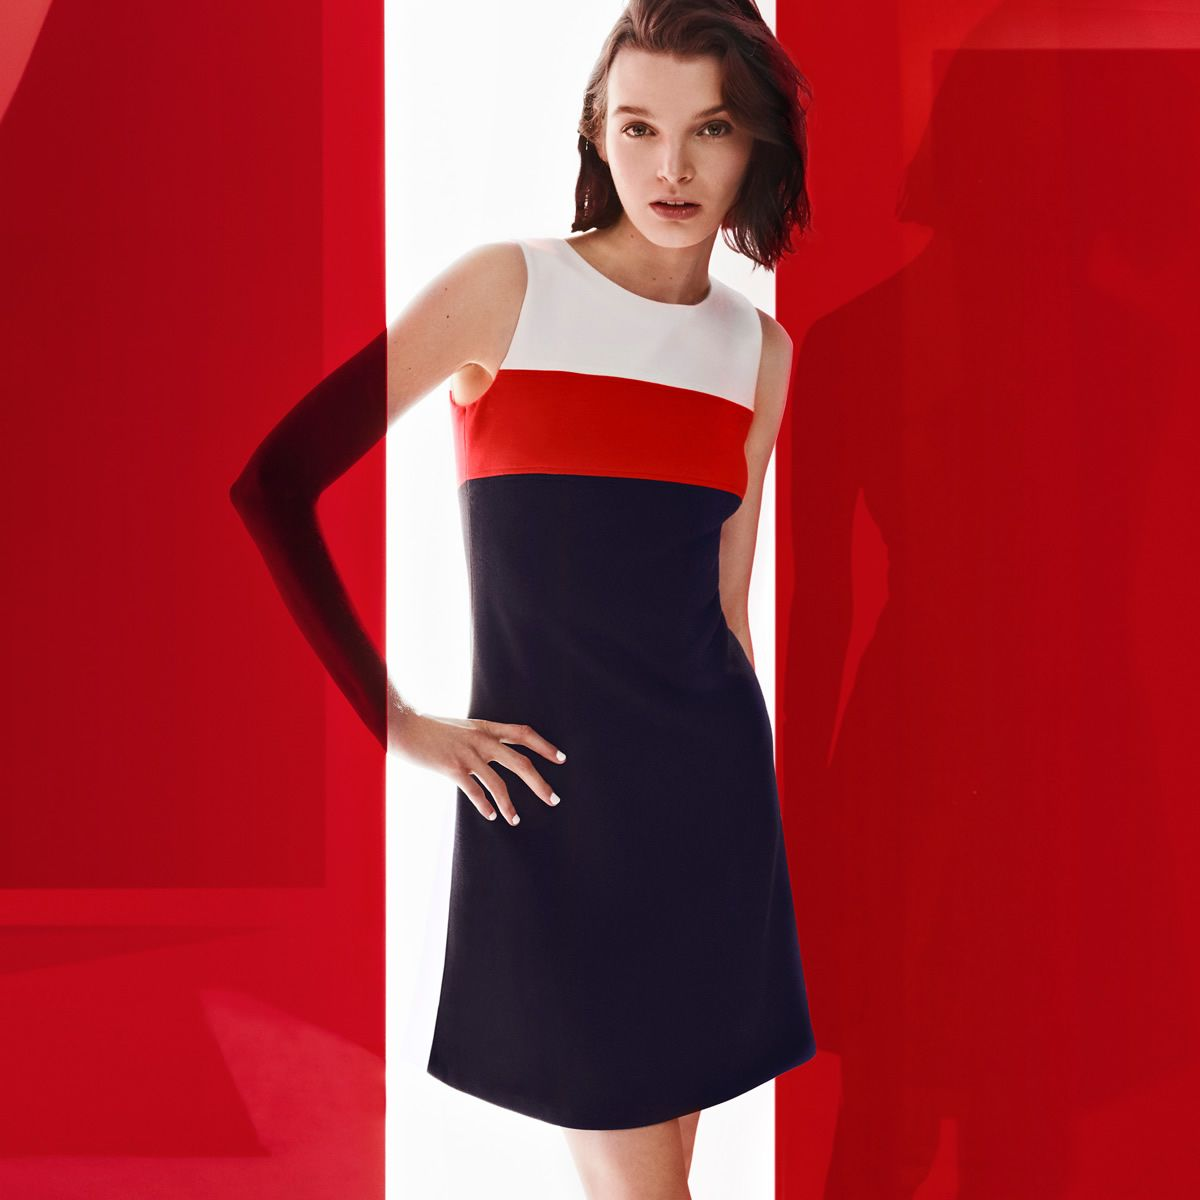 a3245ef6 Tommy Hilfiger Dresses for Women - Macy's